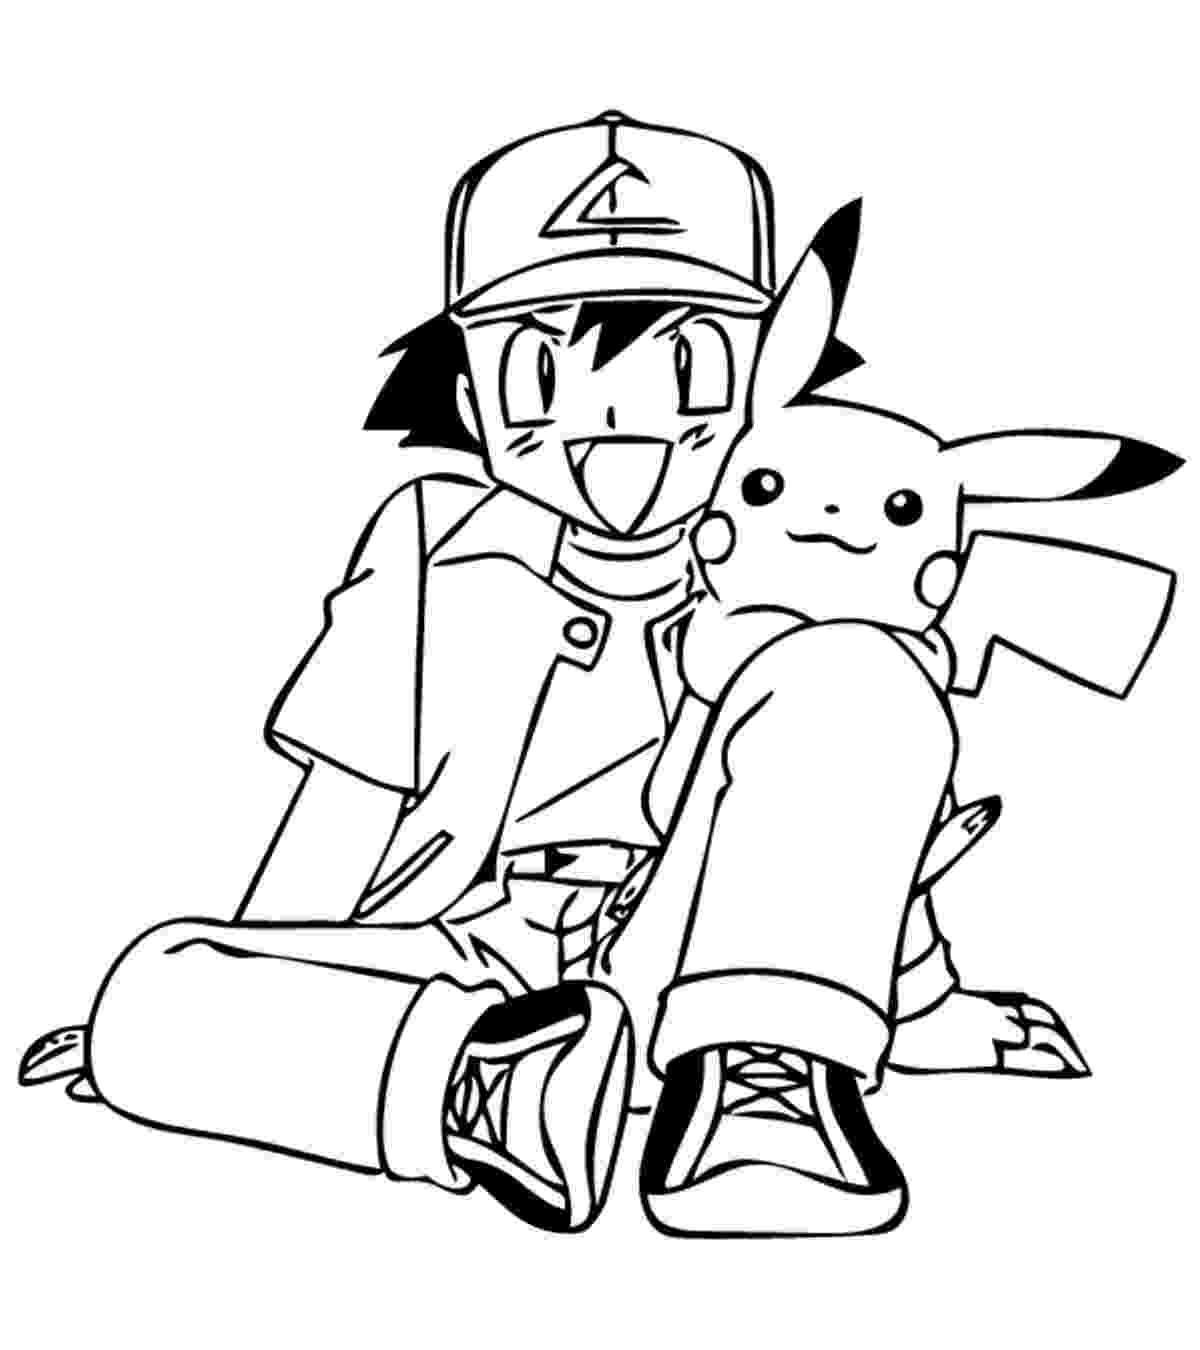 pokmon coloring pages charizard coloring pages to download and print for free pages pokmon coloring